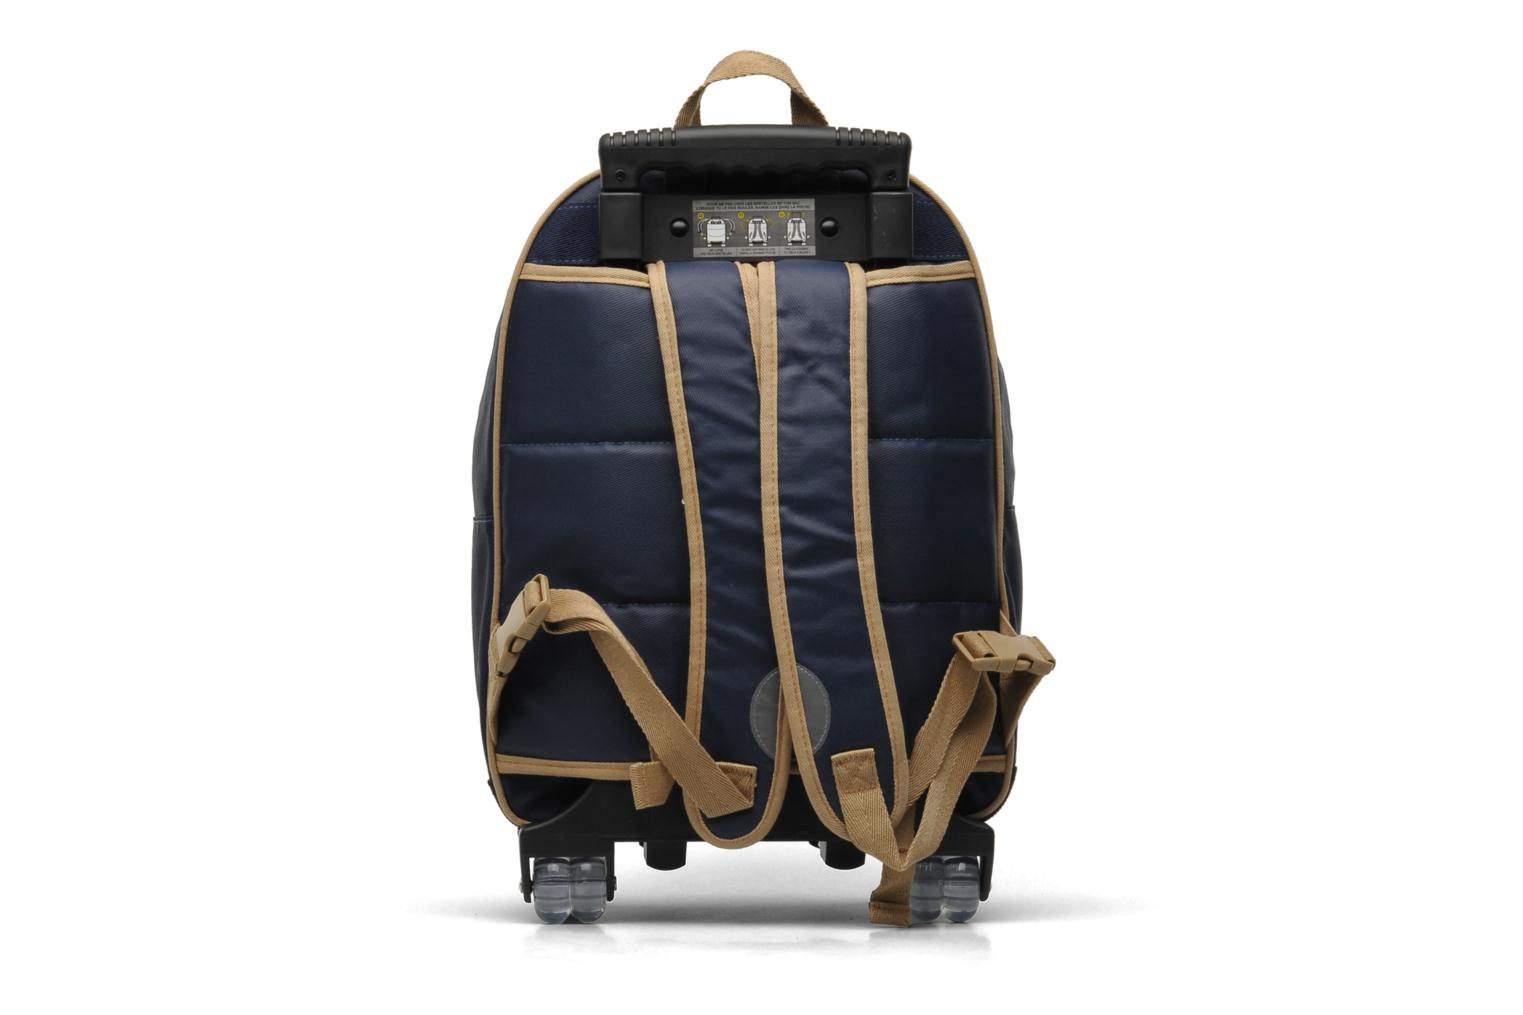 ikks trolley sacs dos l navy school bags in blue at 187272. Black Bedroom Furniture Sets. Home Design Ideas